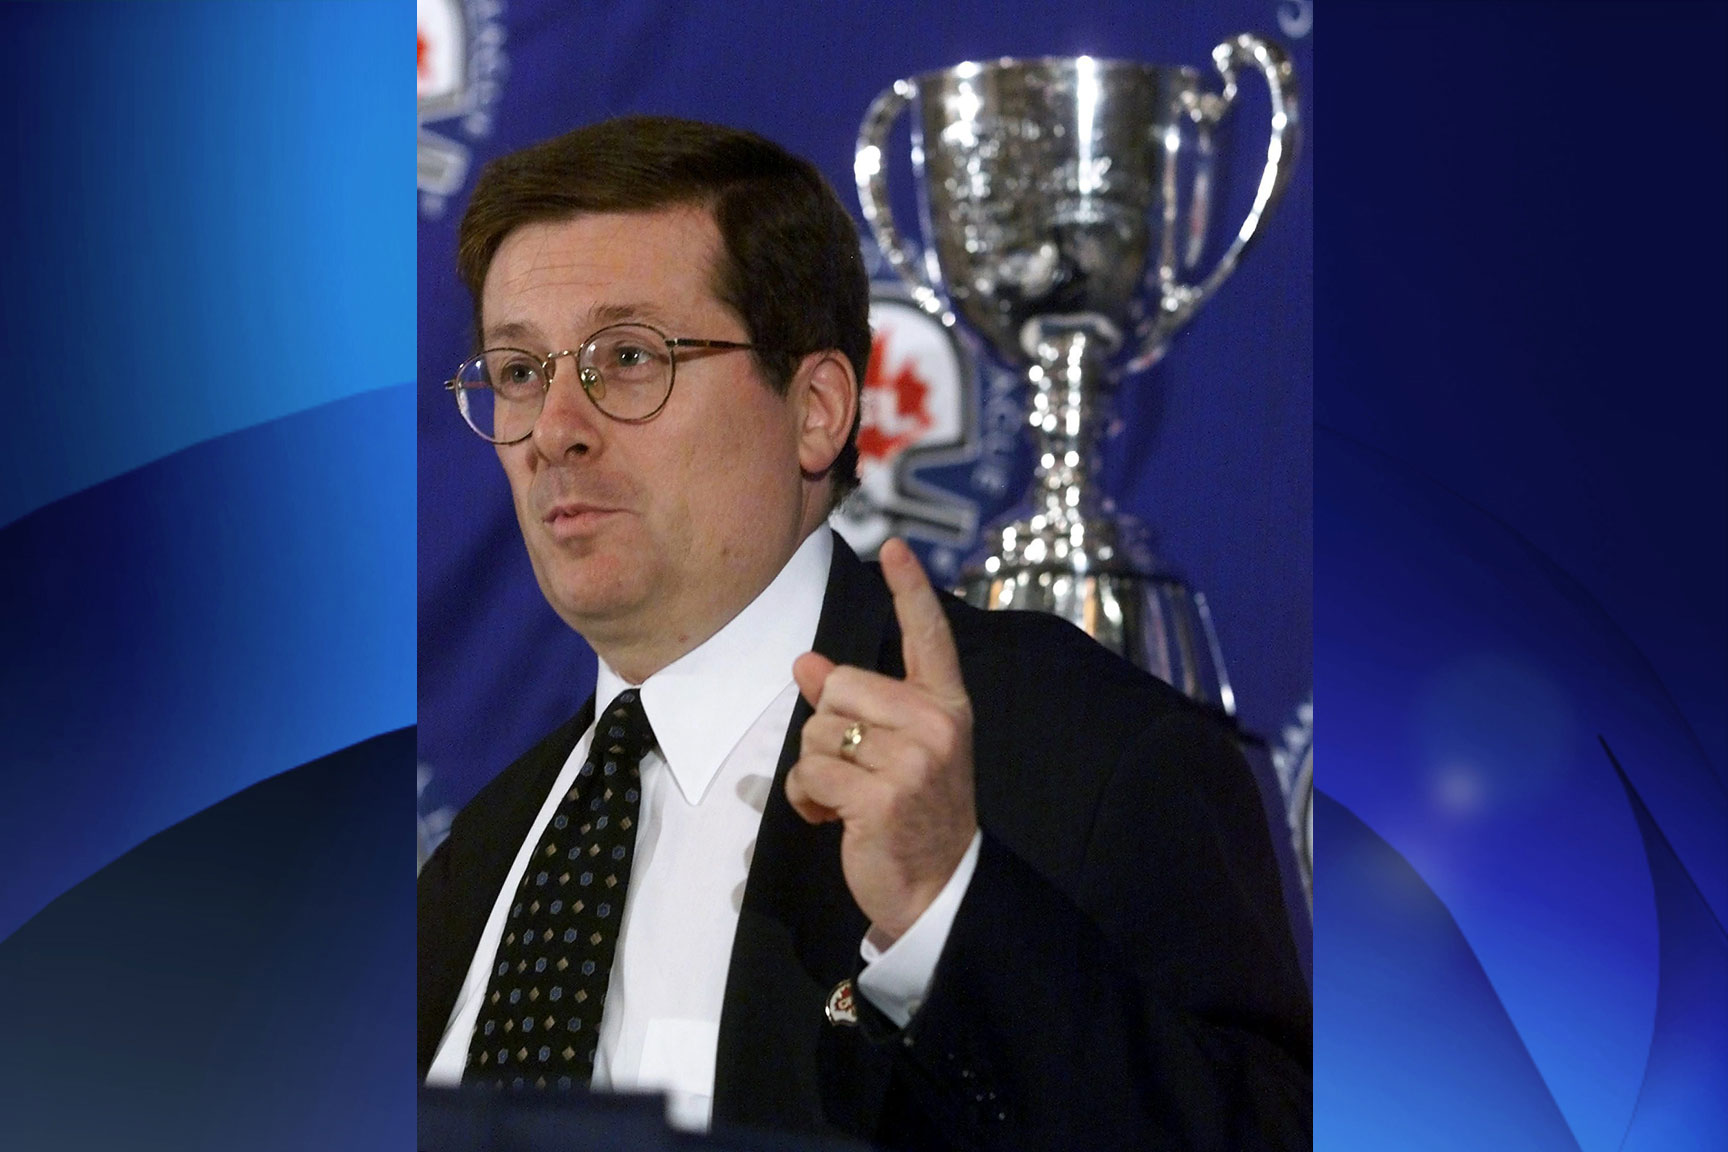 Canadian Football League Commissioner John Tory speaks to reporters at the annual news conference during Grey Cup week on Nov. 26, 1999 in Vancouver. THE CANADIAN PRESS/Ryan Remiorz